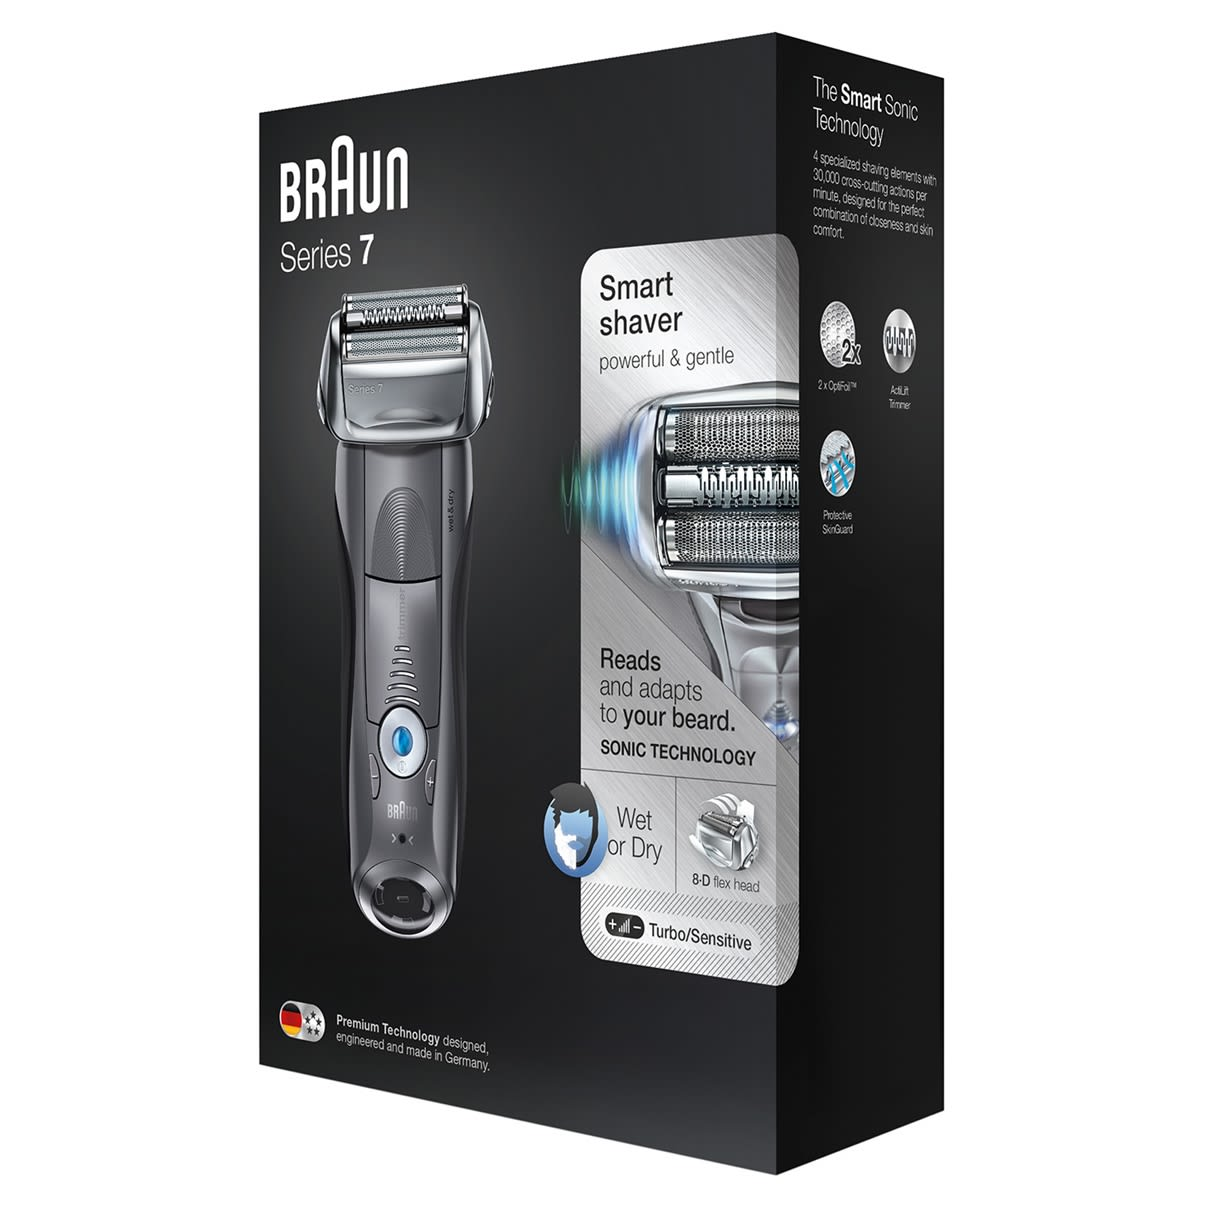 Braun Series 7 grey electric shaver packaging